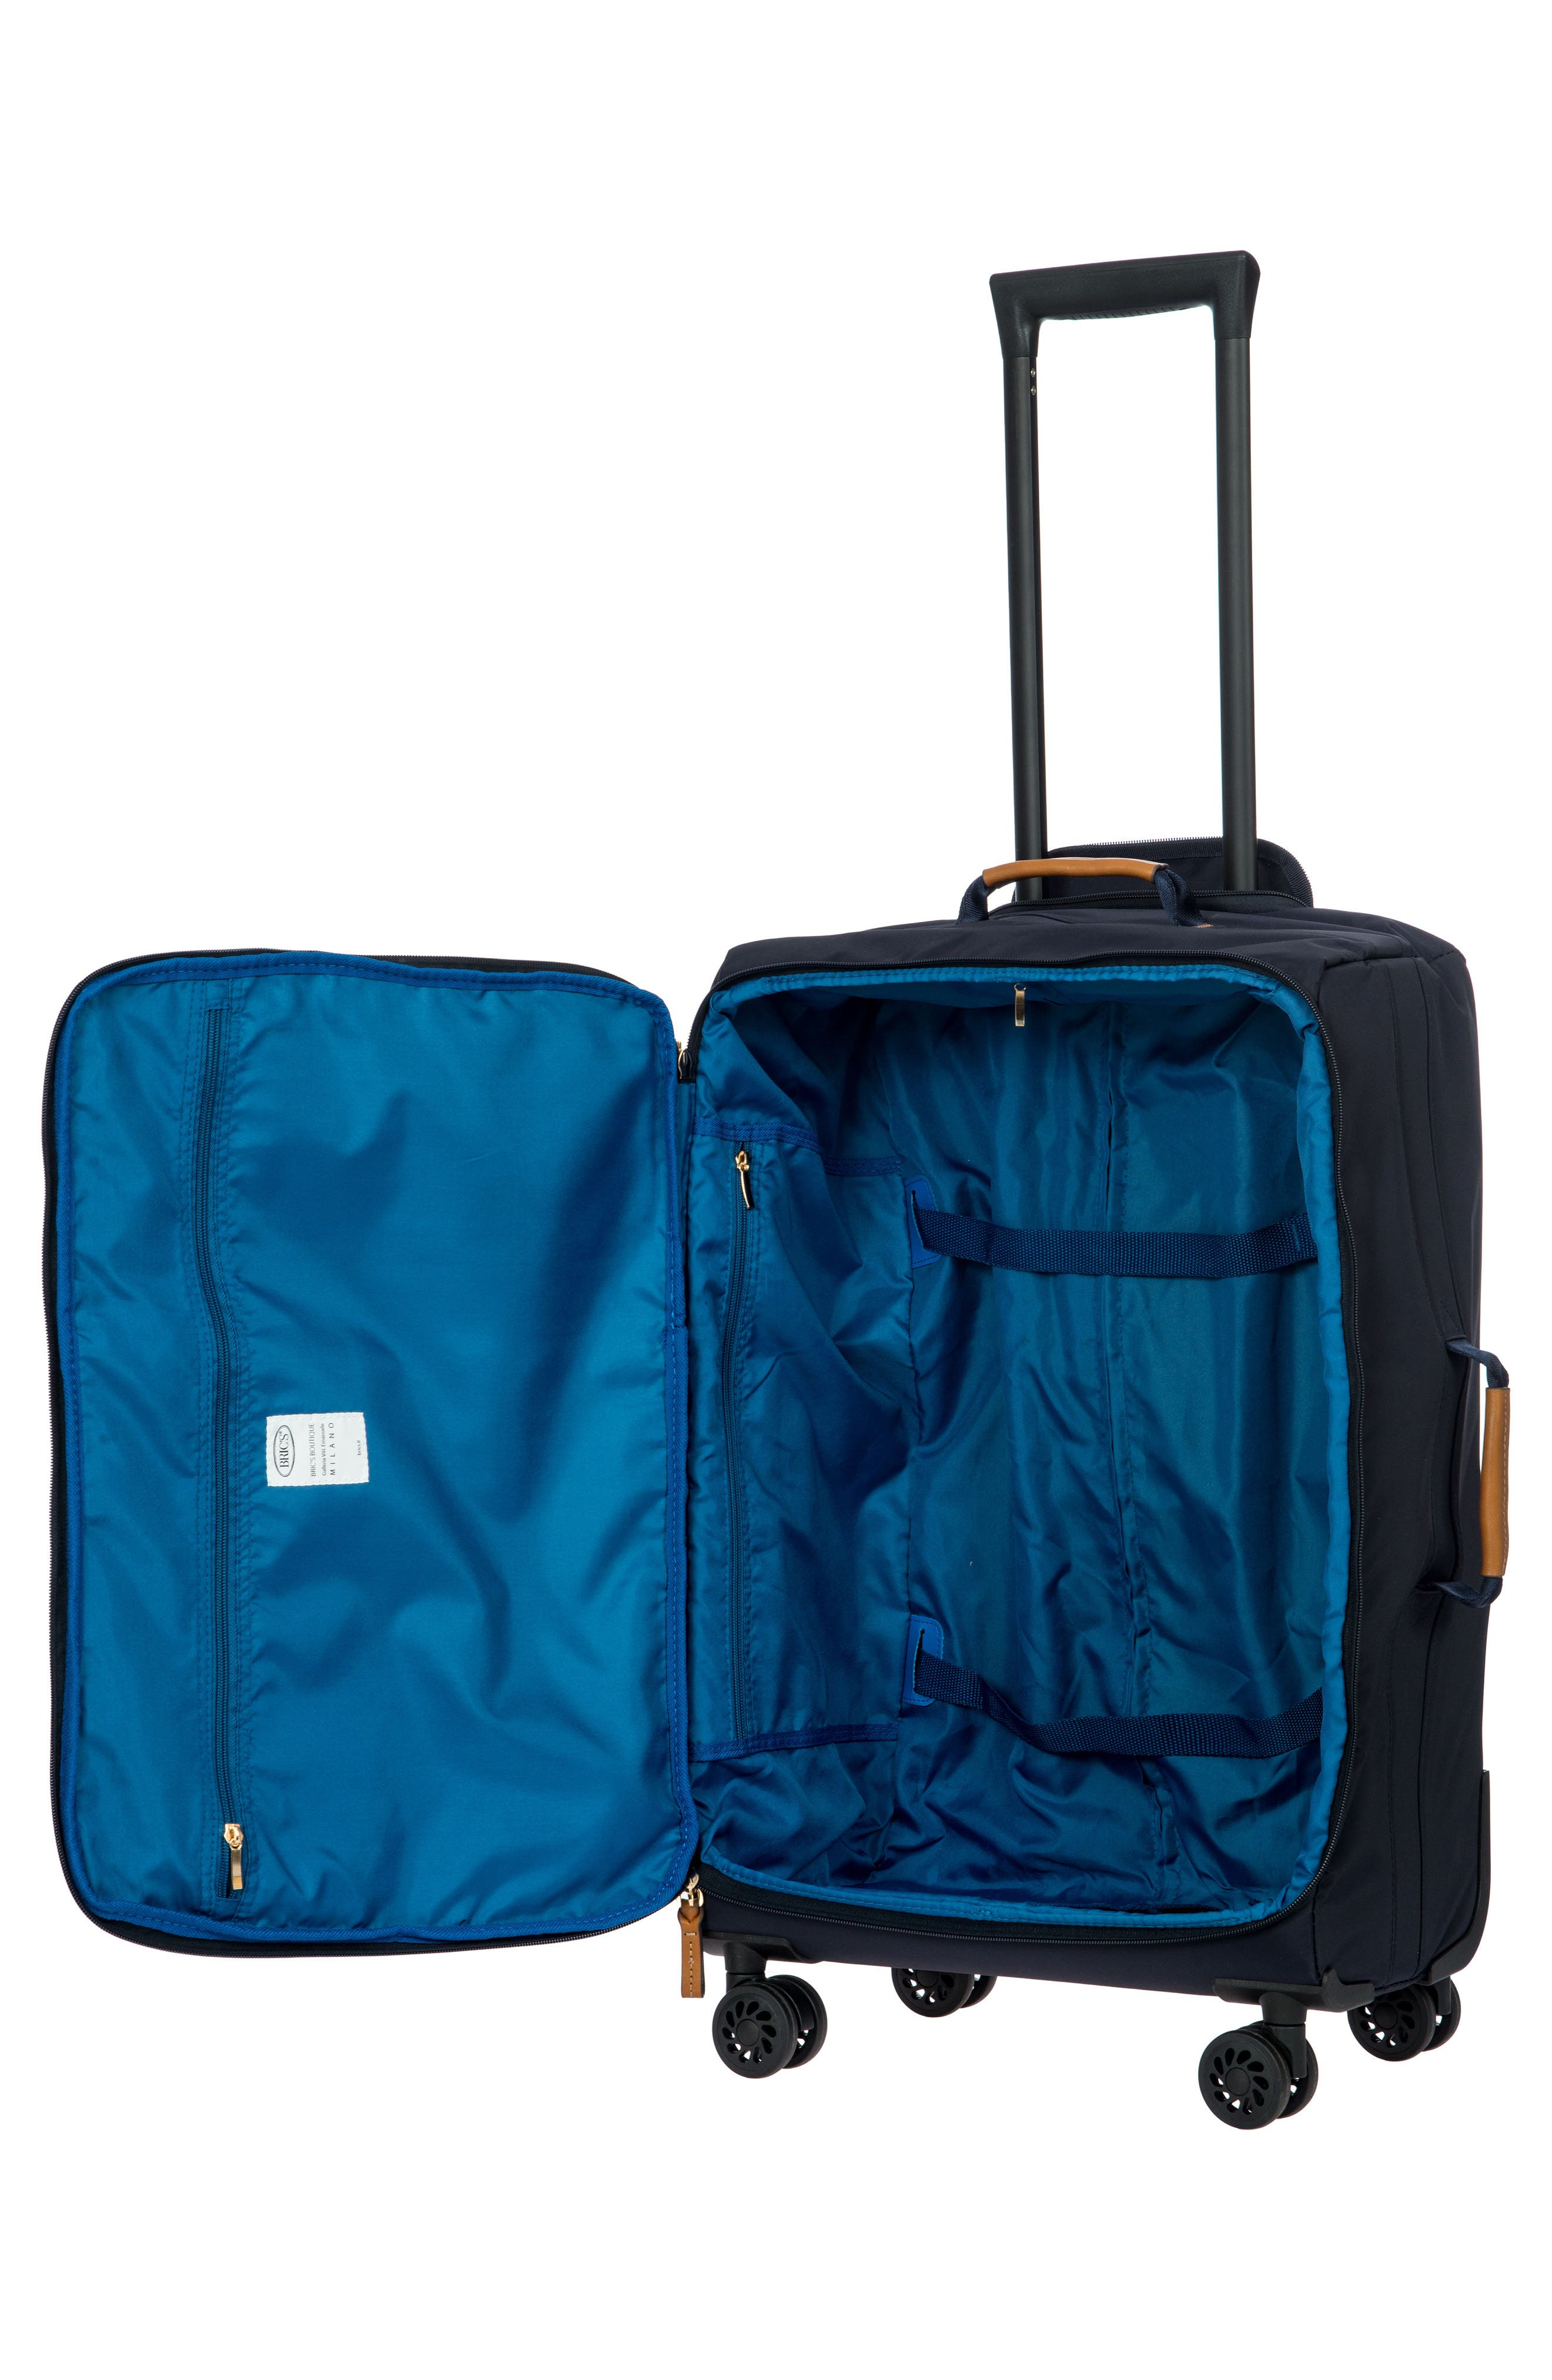 X-Bag 25-Inch Spinner Suitcase,                             Alternate thumbnail 5, color,                             Navy